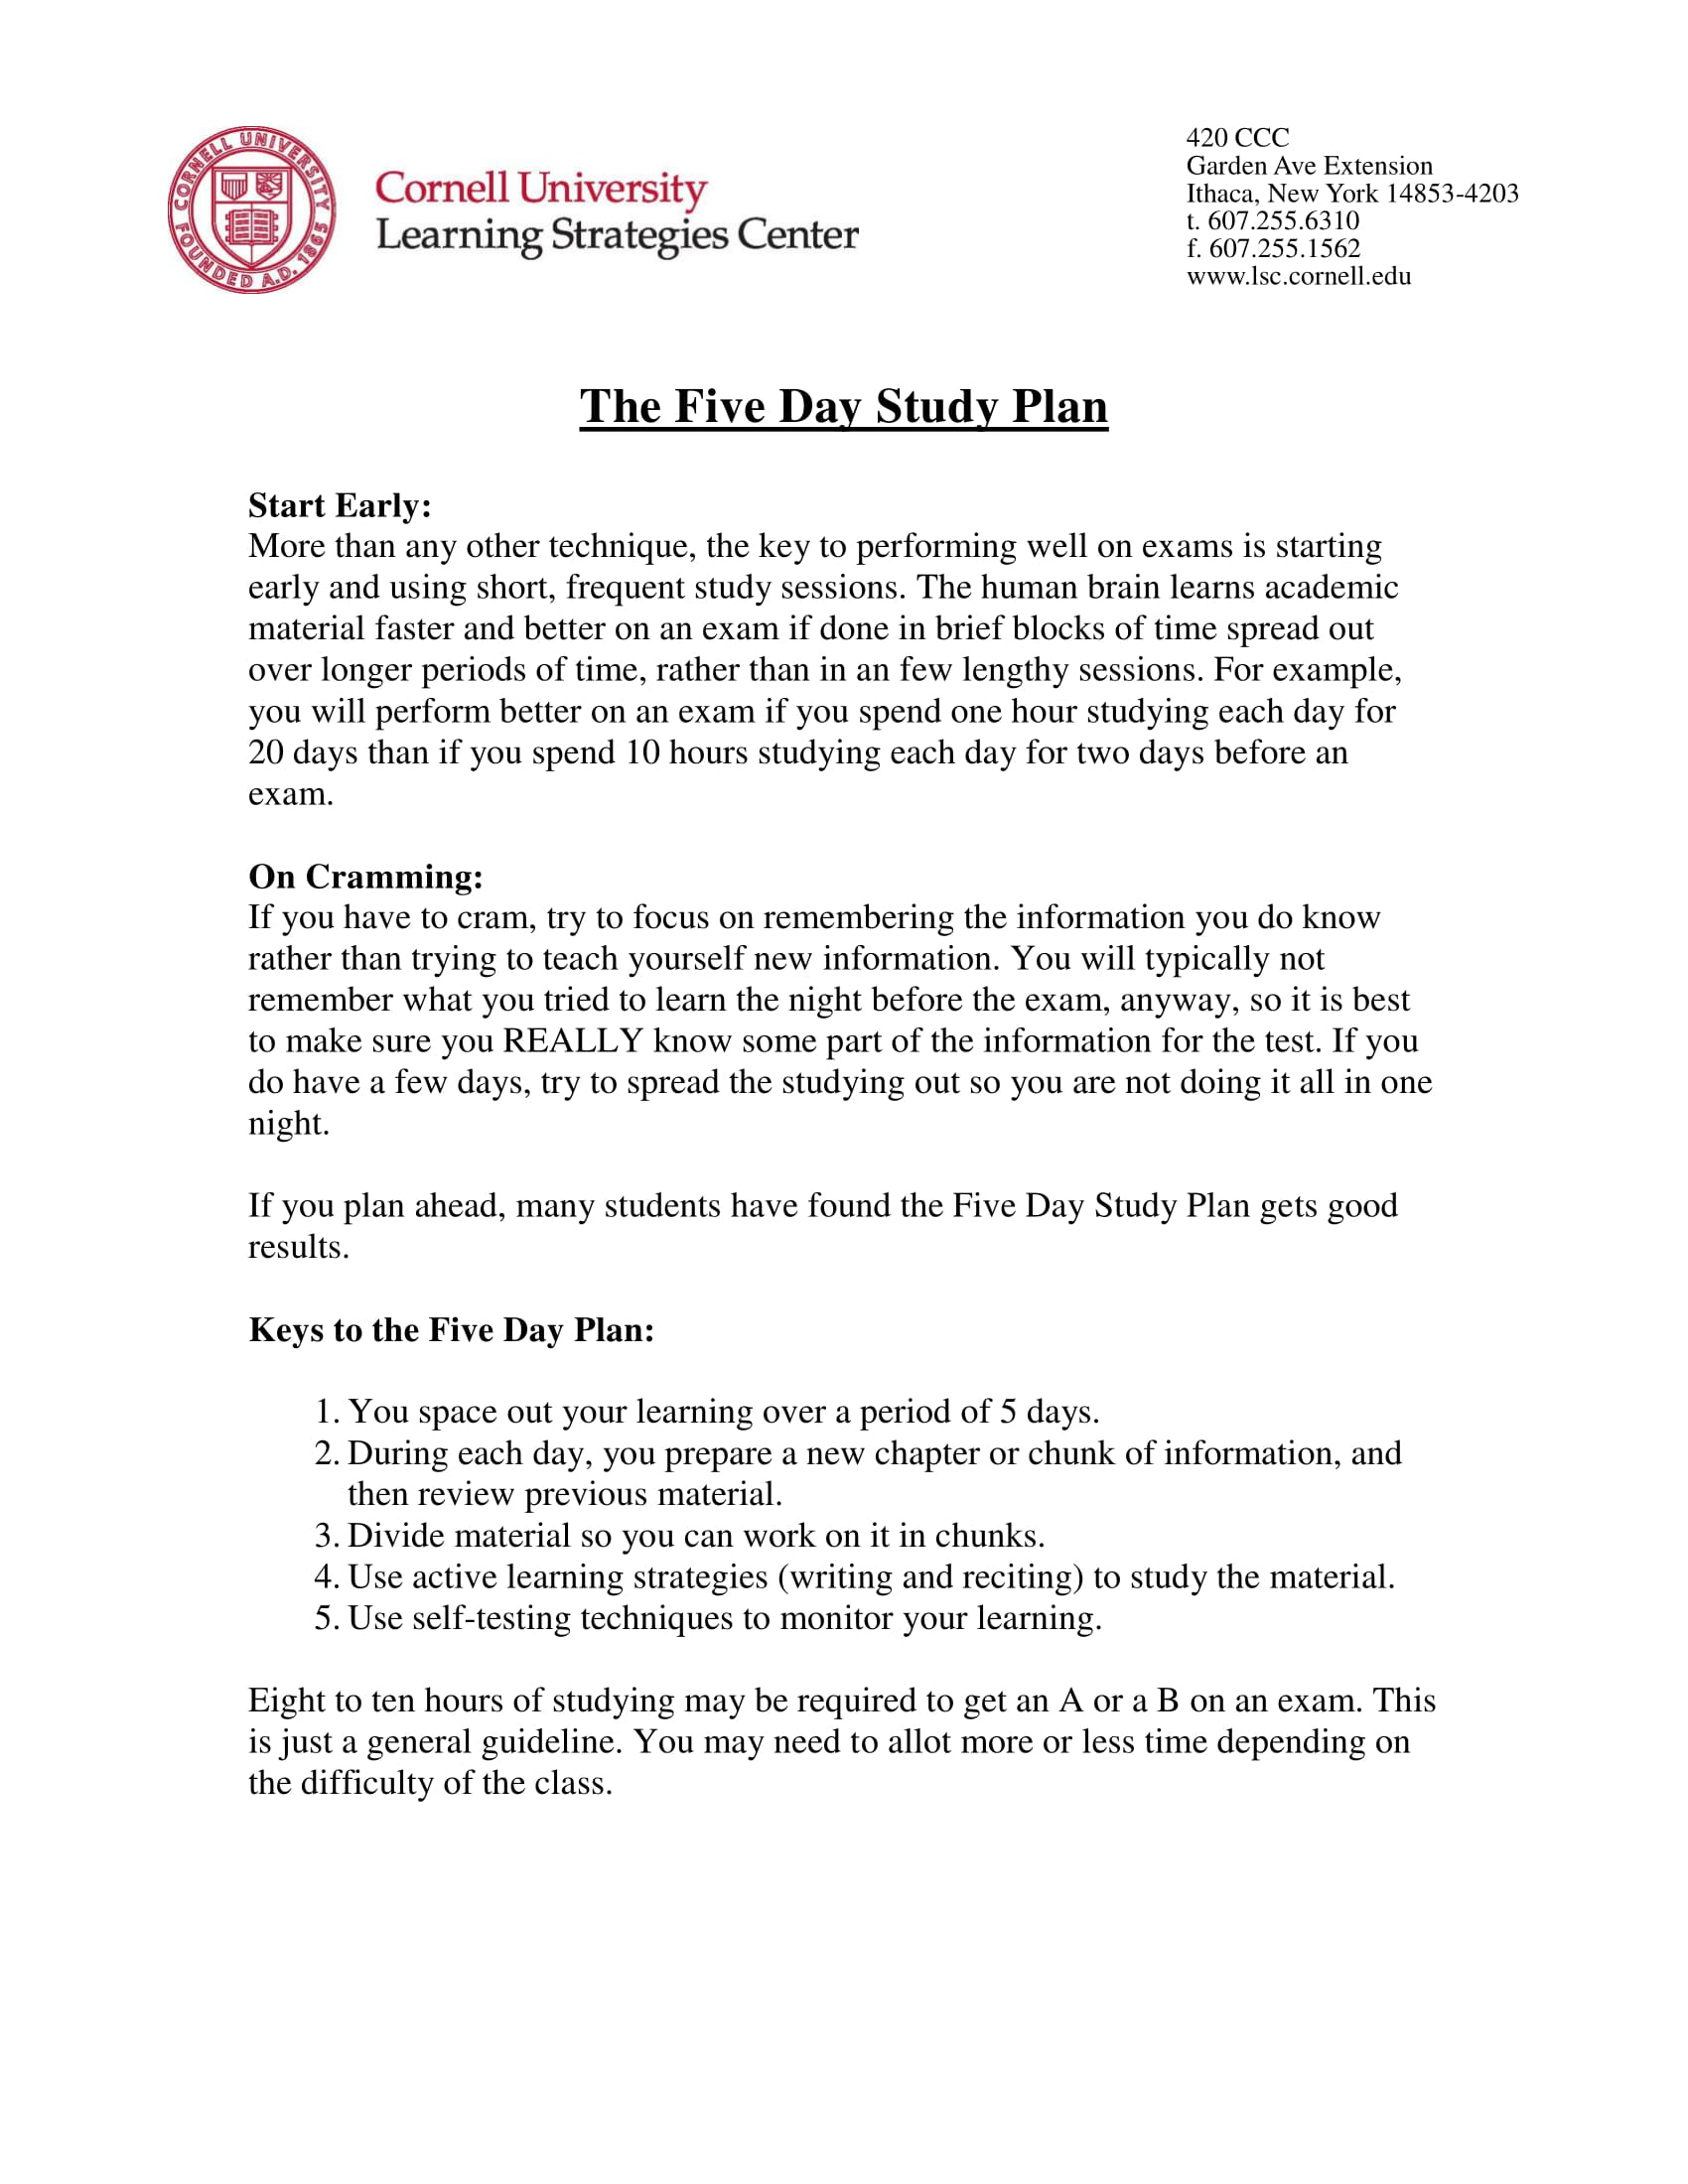 How to write a phd study plan